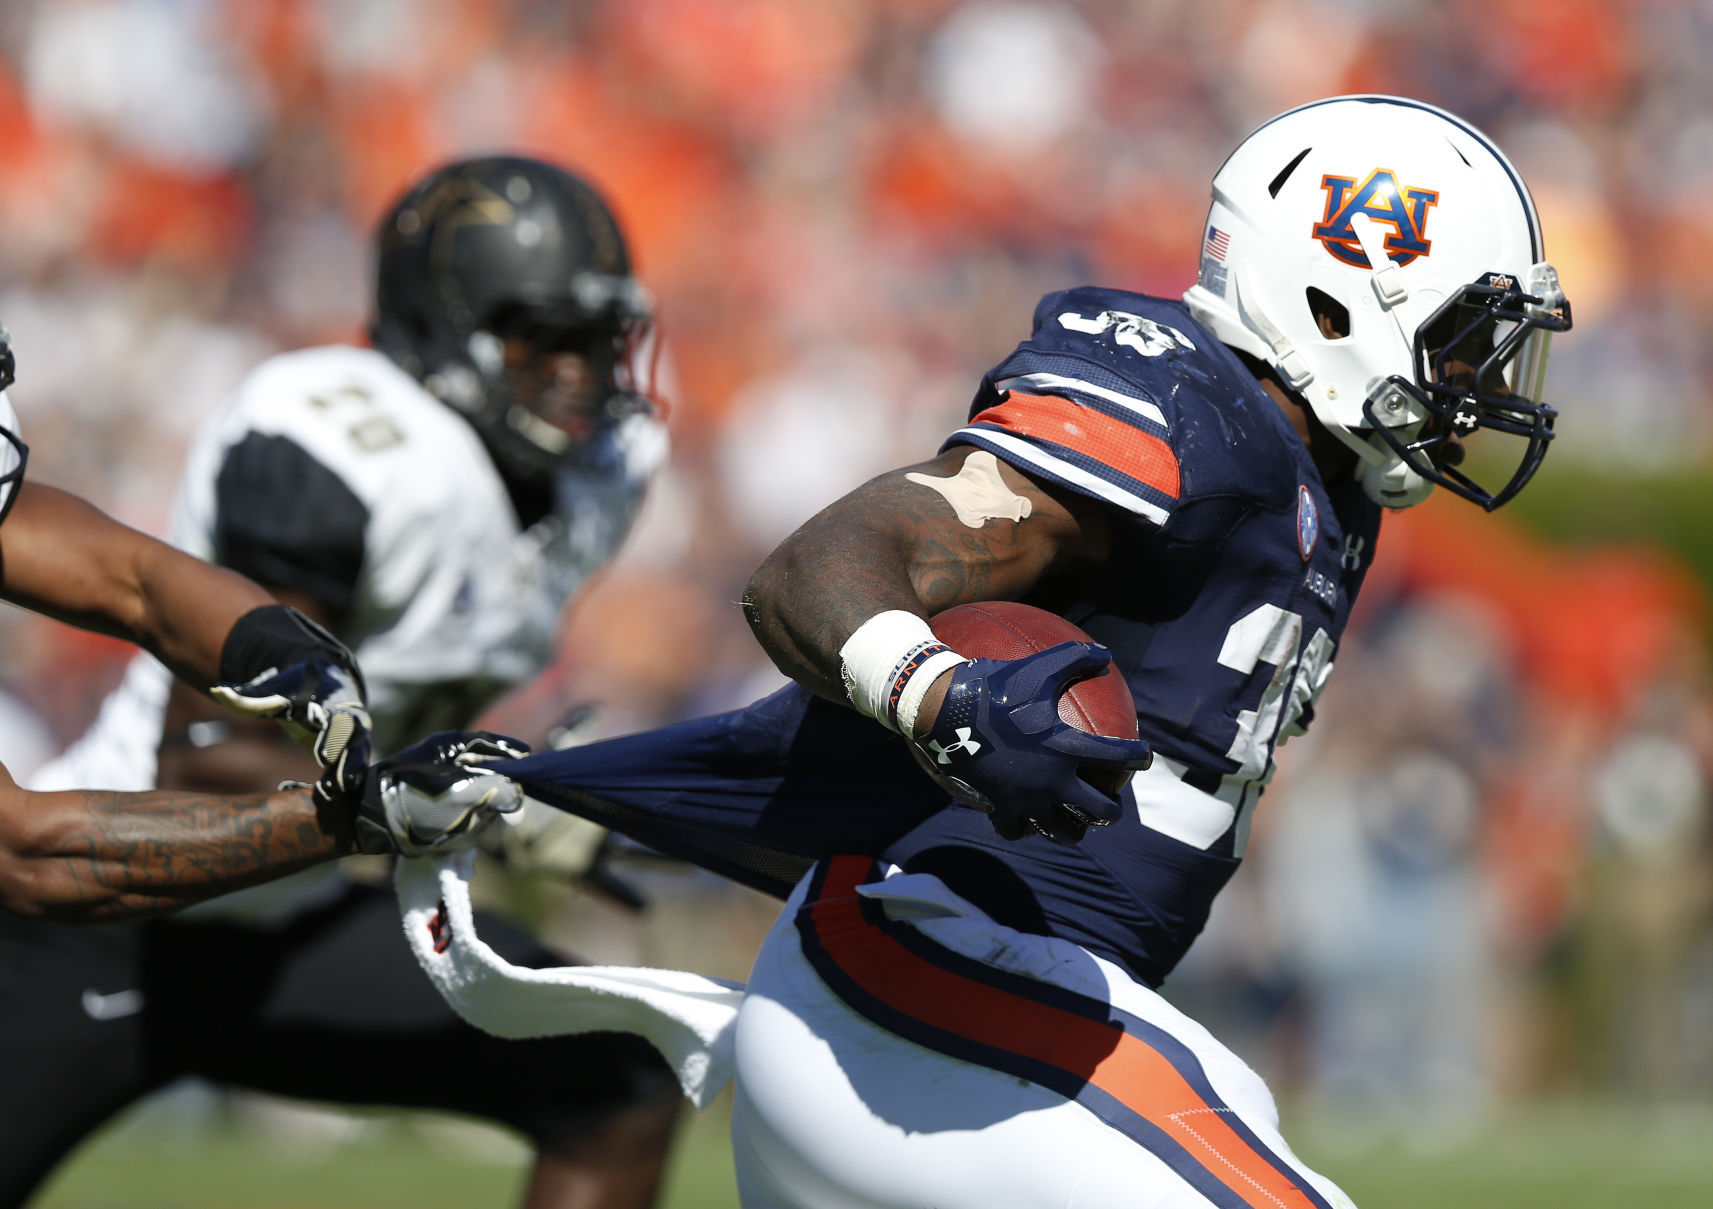 No. 24 Mississippi State at No. 13 Auburn